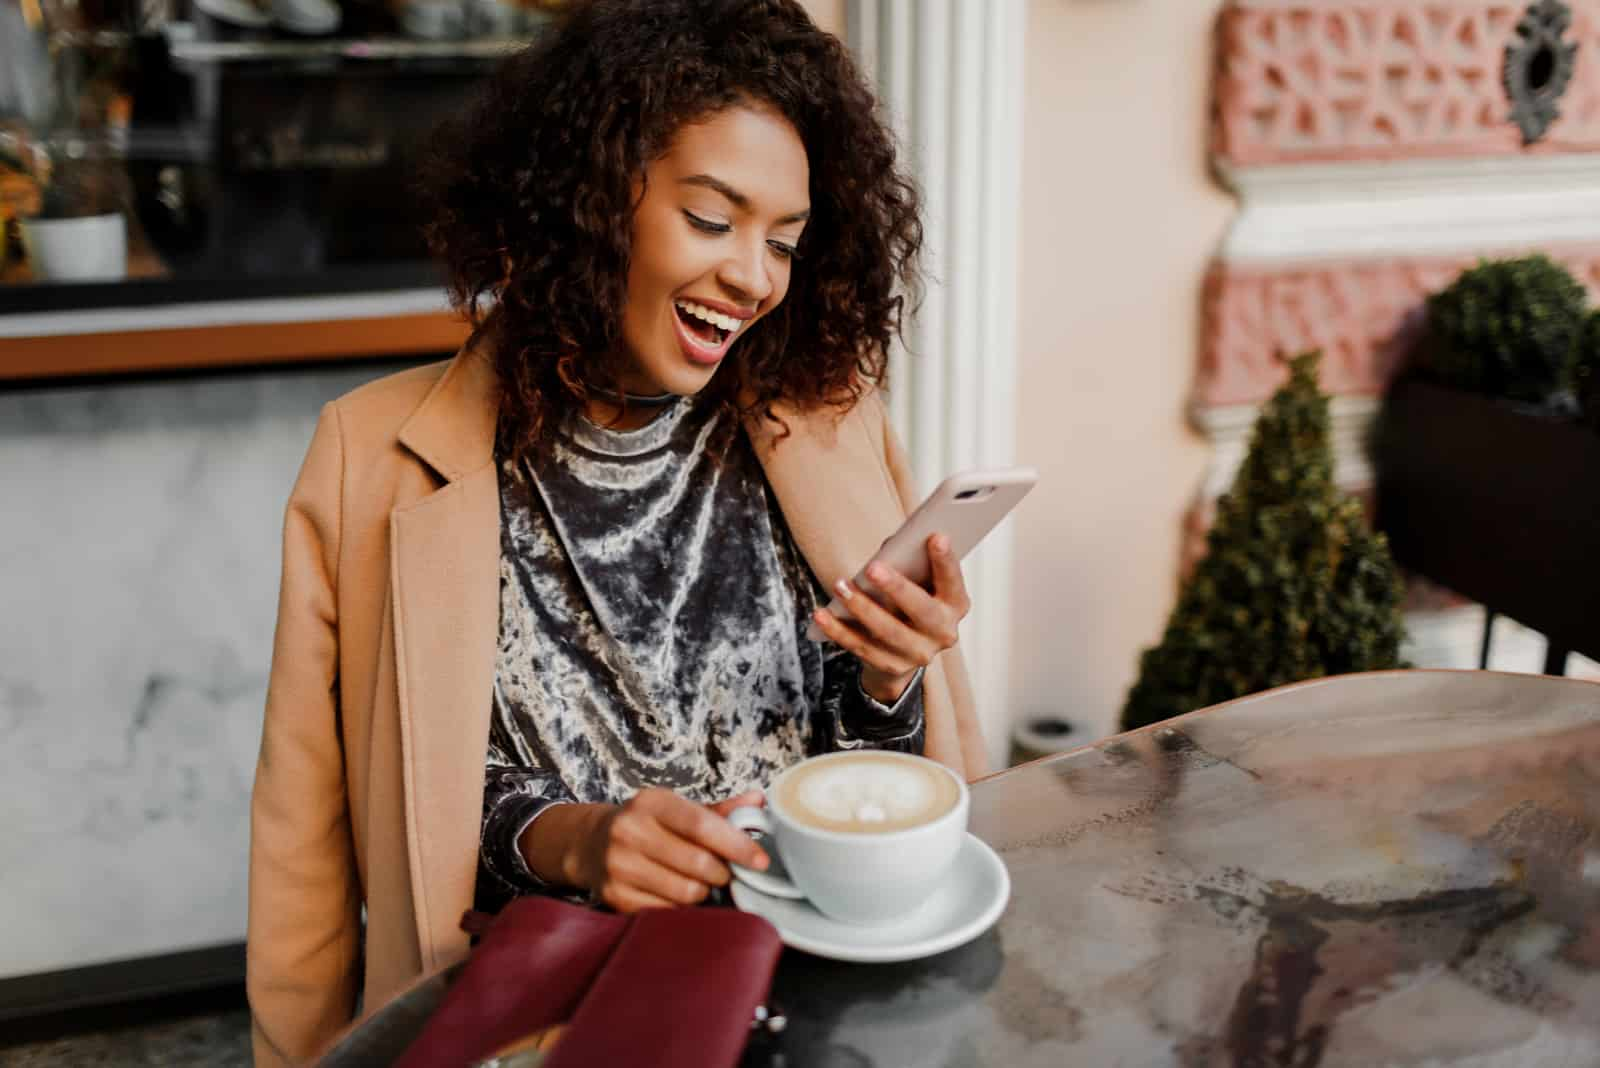 a smiling woman with frizzy hair laughs and keys on the phone